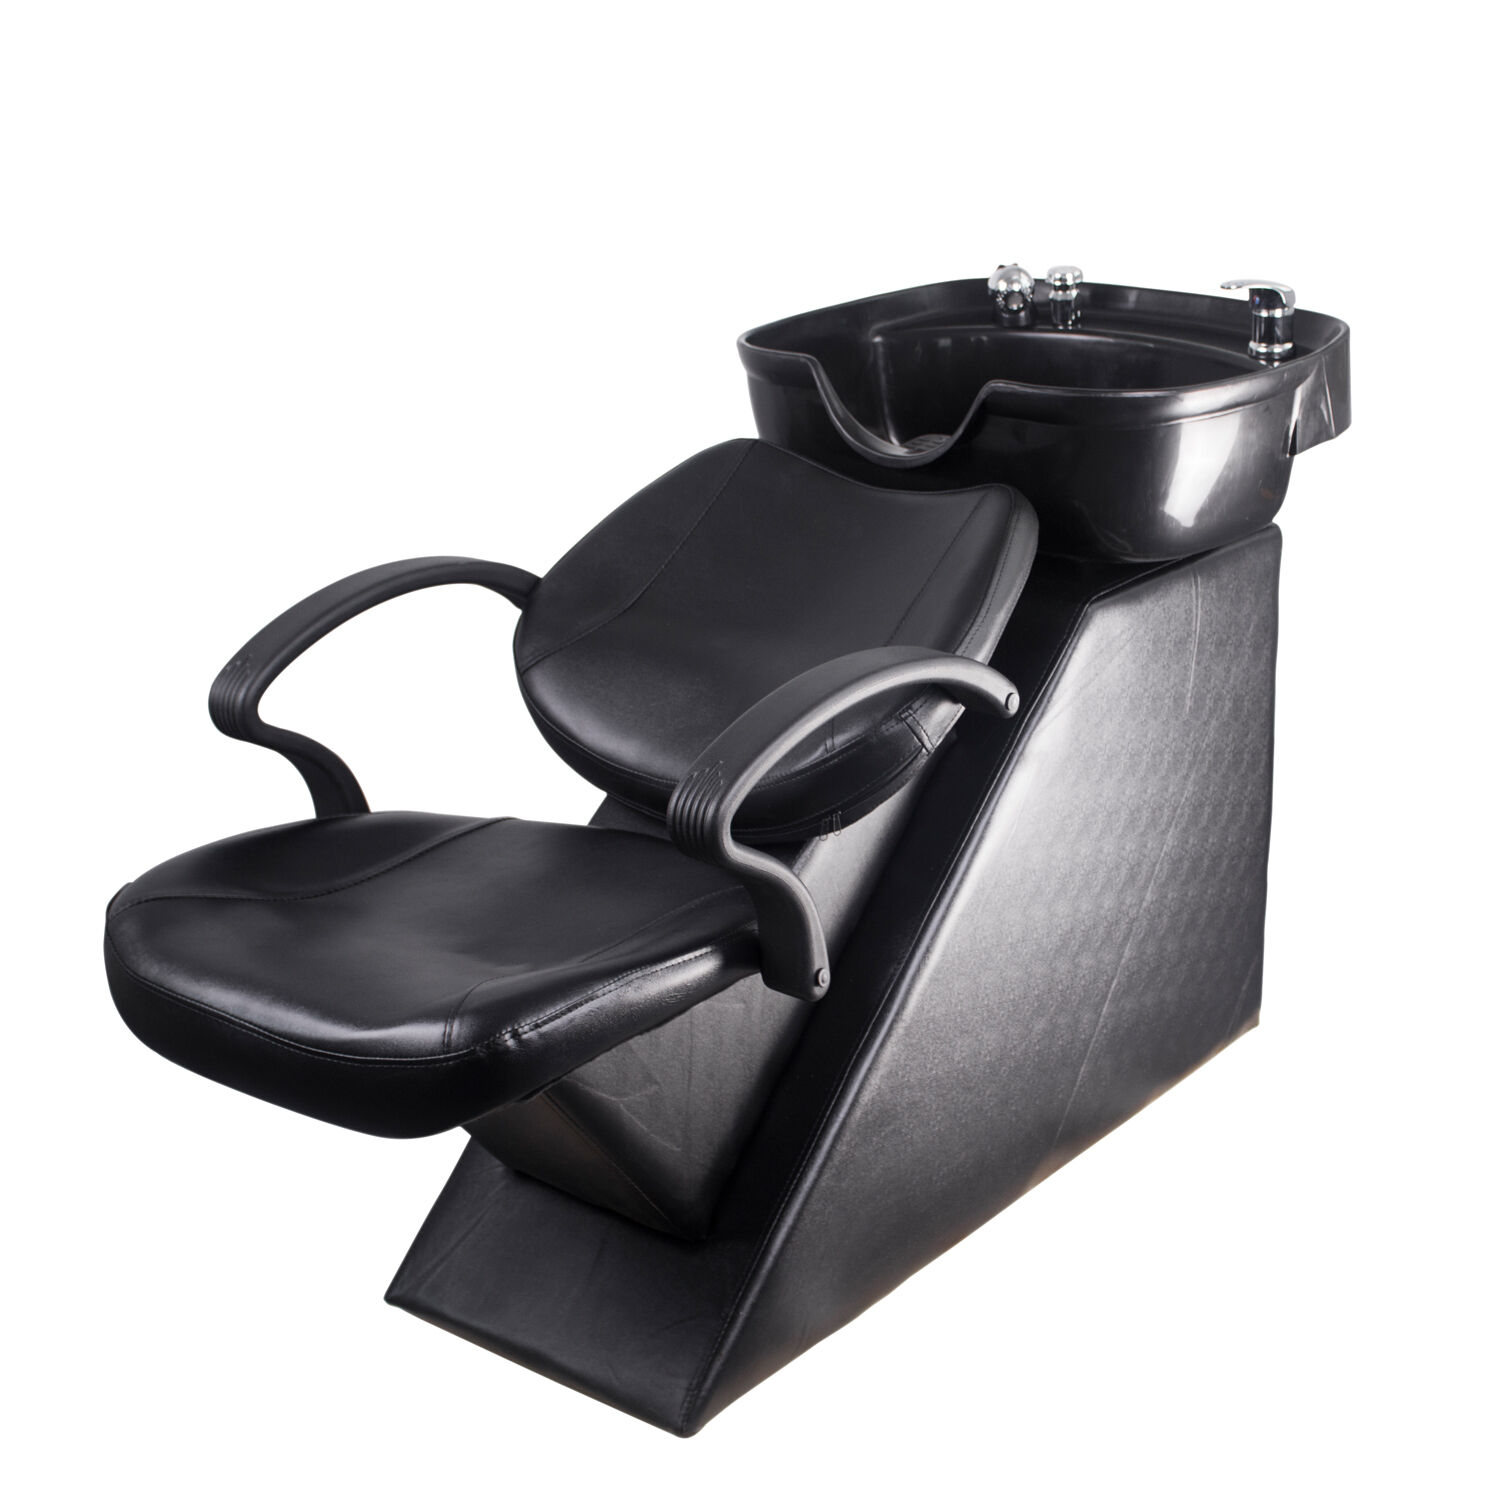 shampoo sink and chair sporting event chairs new backwash bowl barber station unit